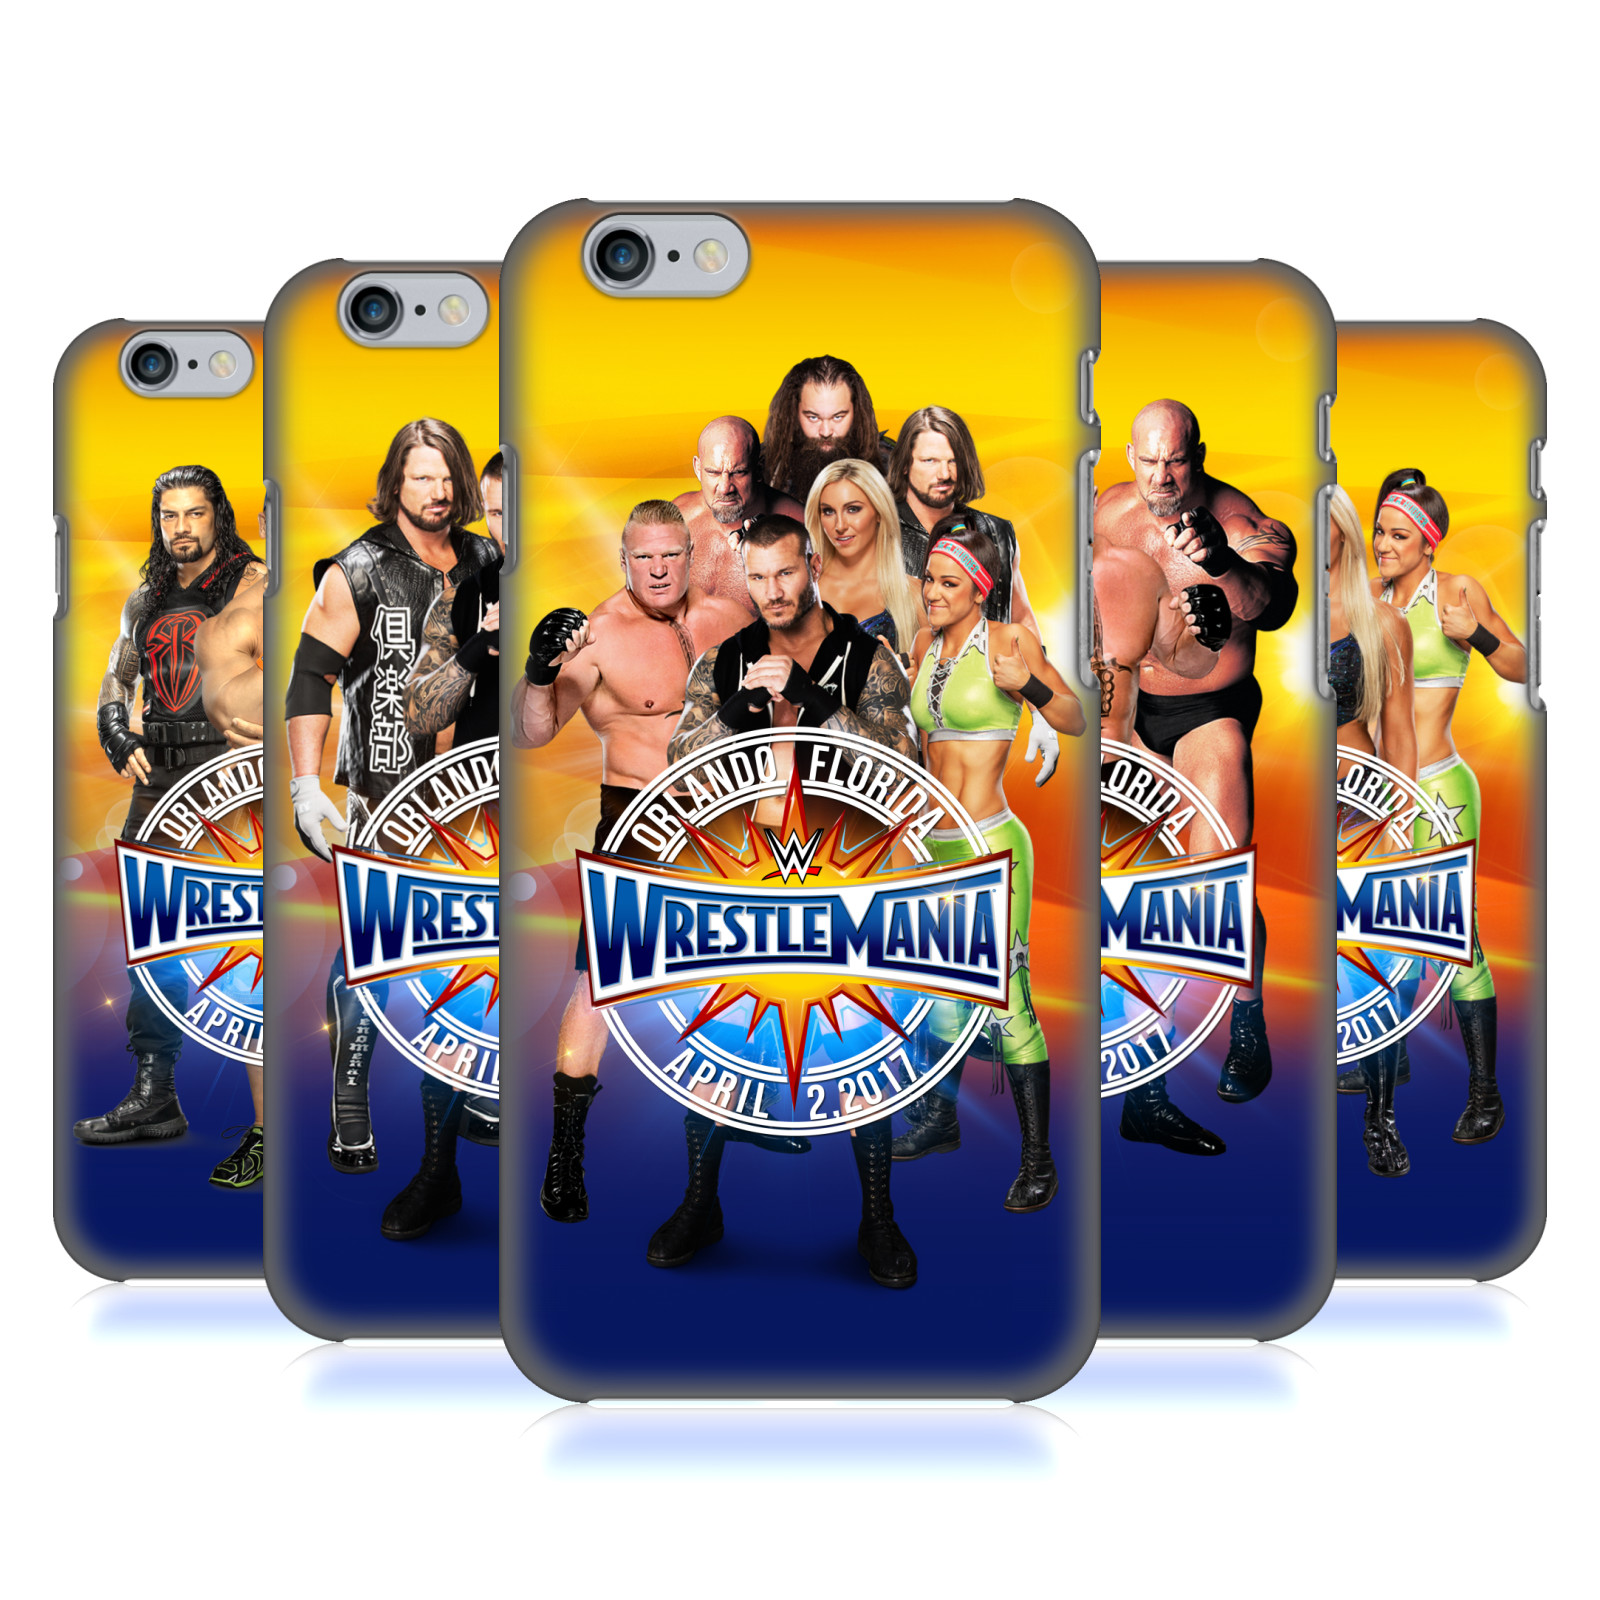 WWE Wrestlemania 33 Superstars